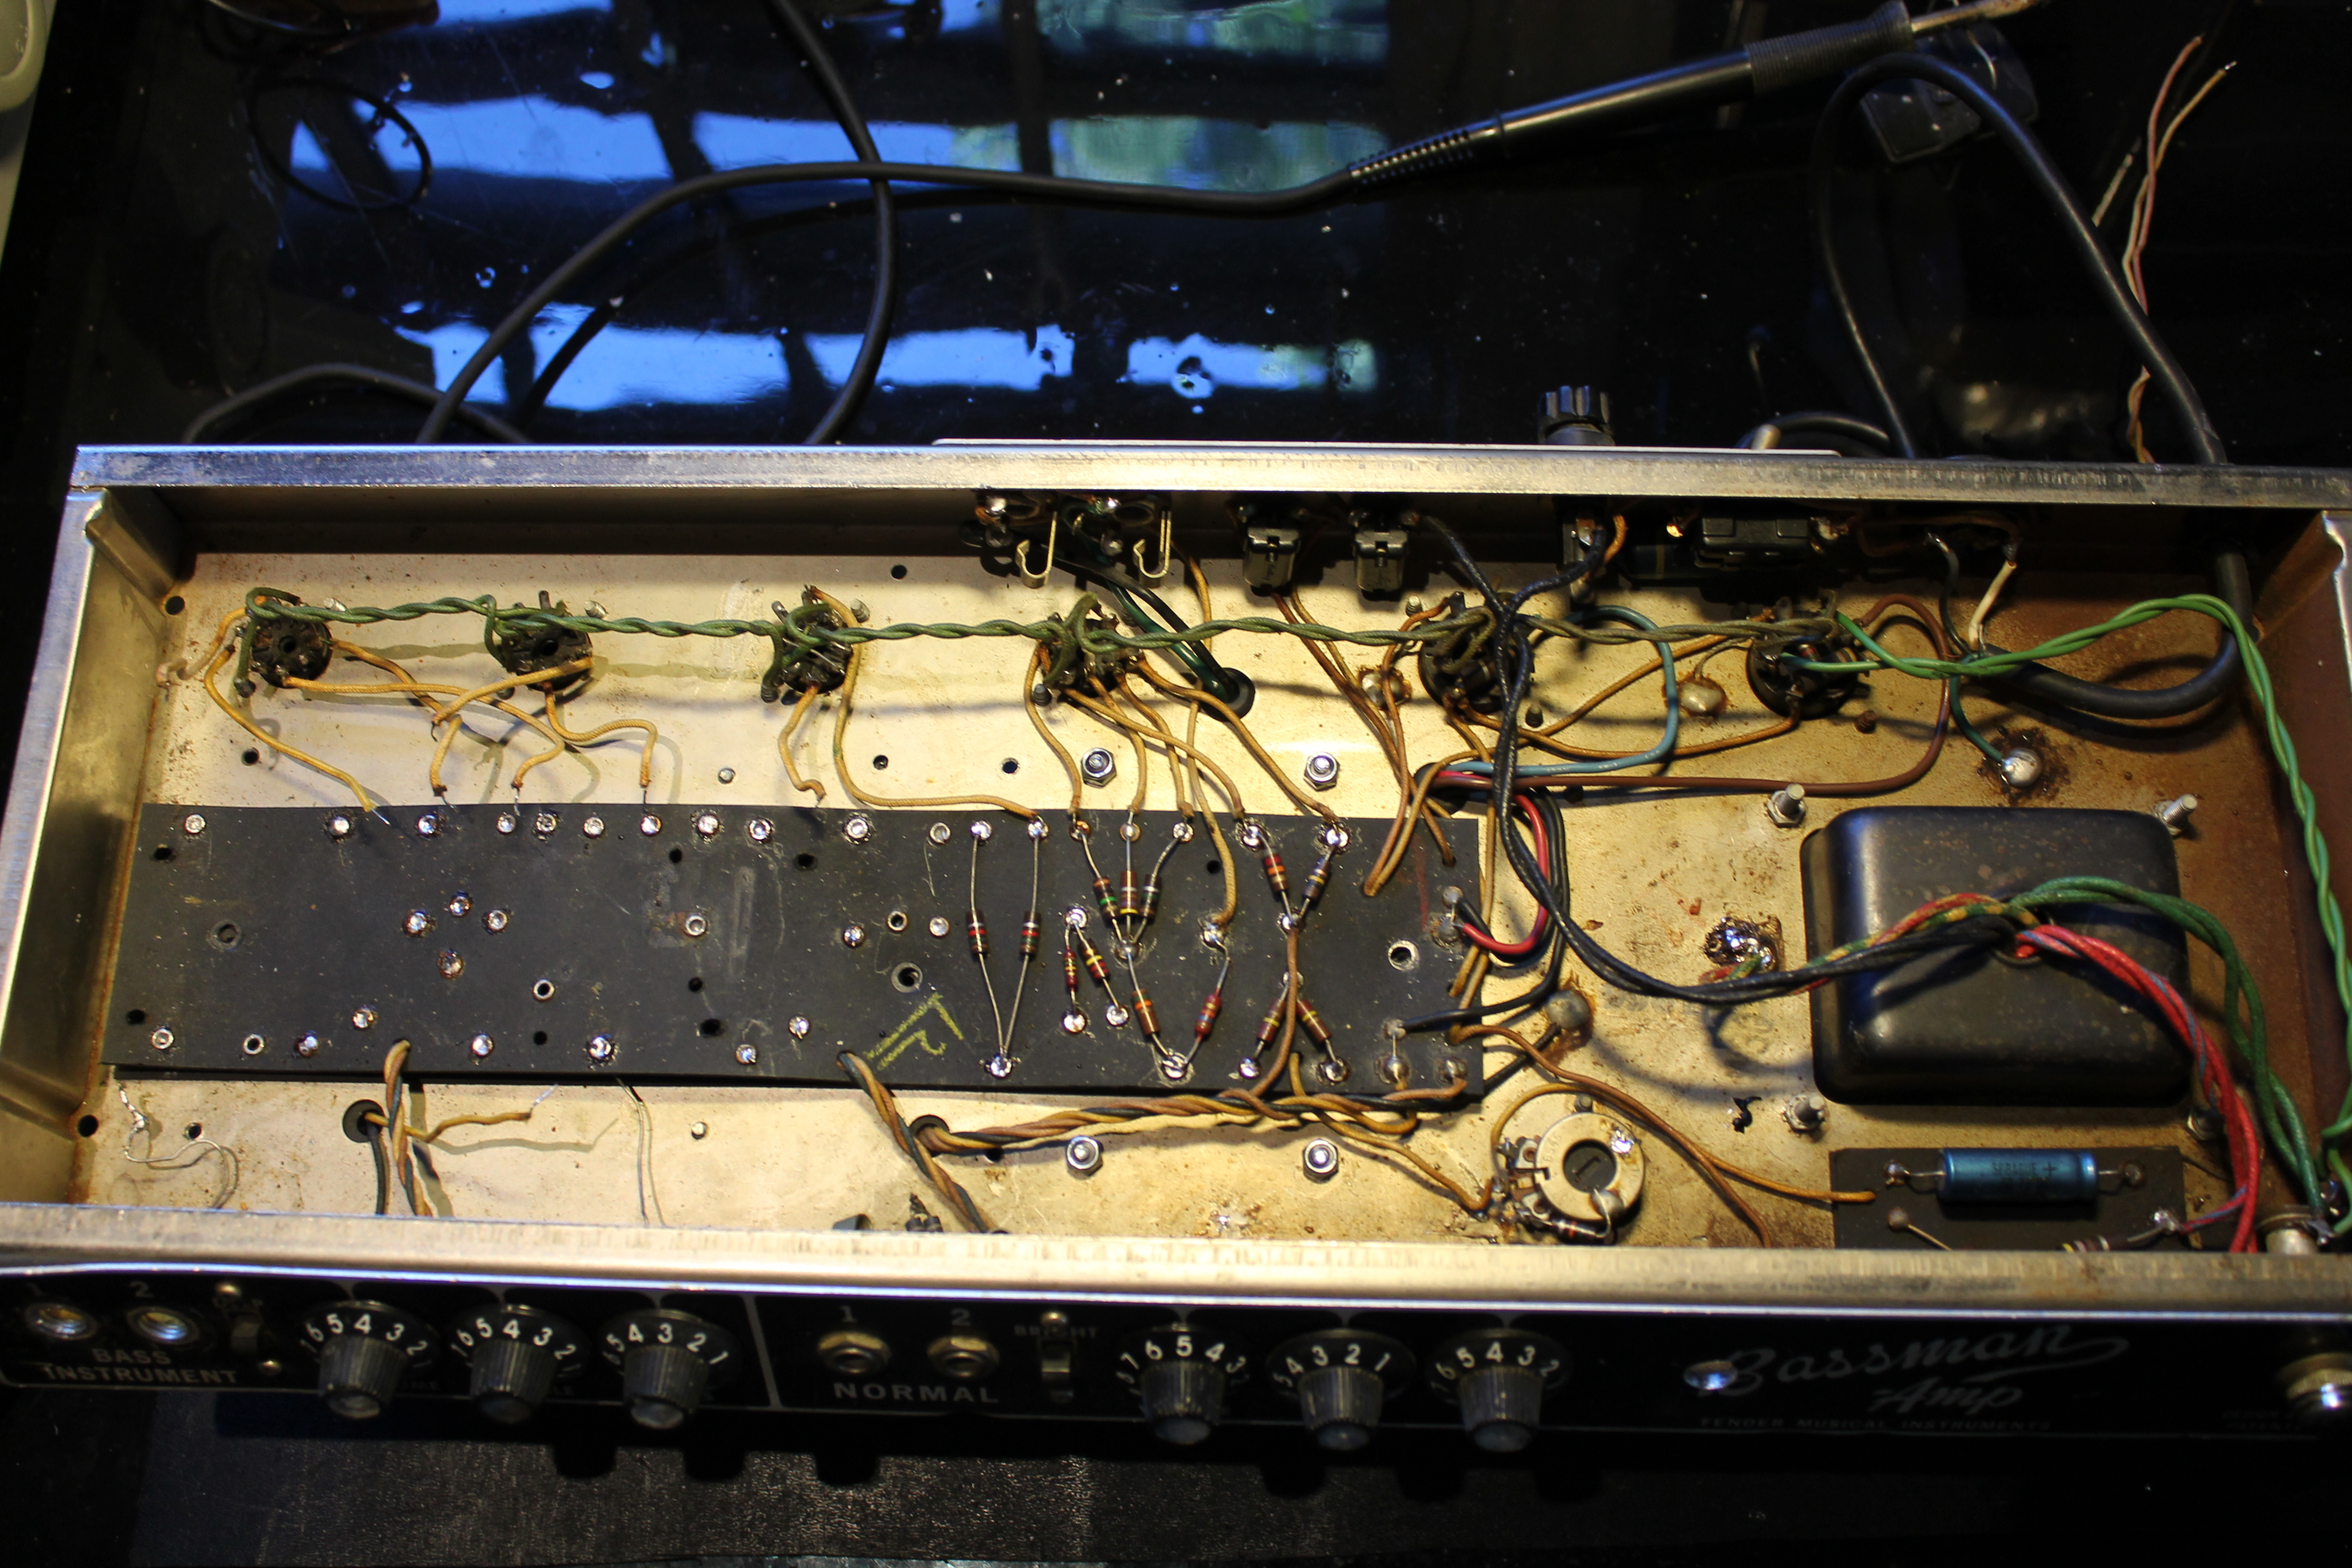 A Blackface Bassman ready for the power supply mods. The main circuit board  being prepared for mods.